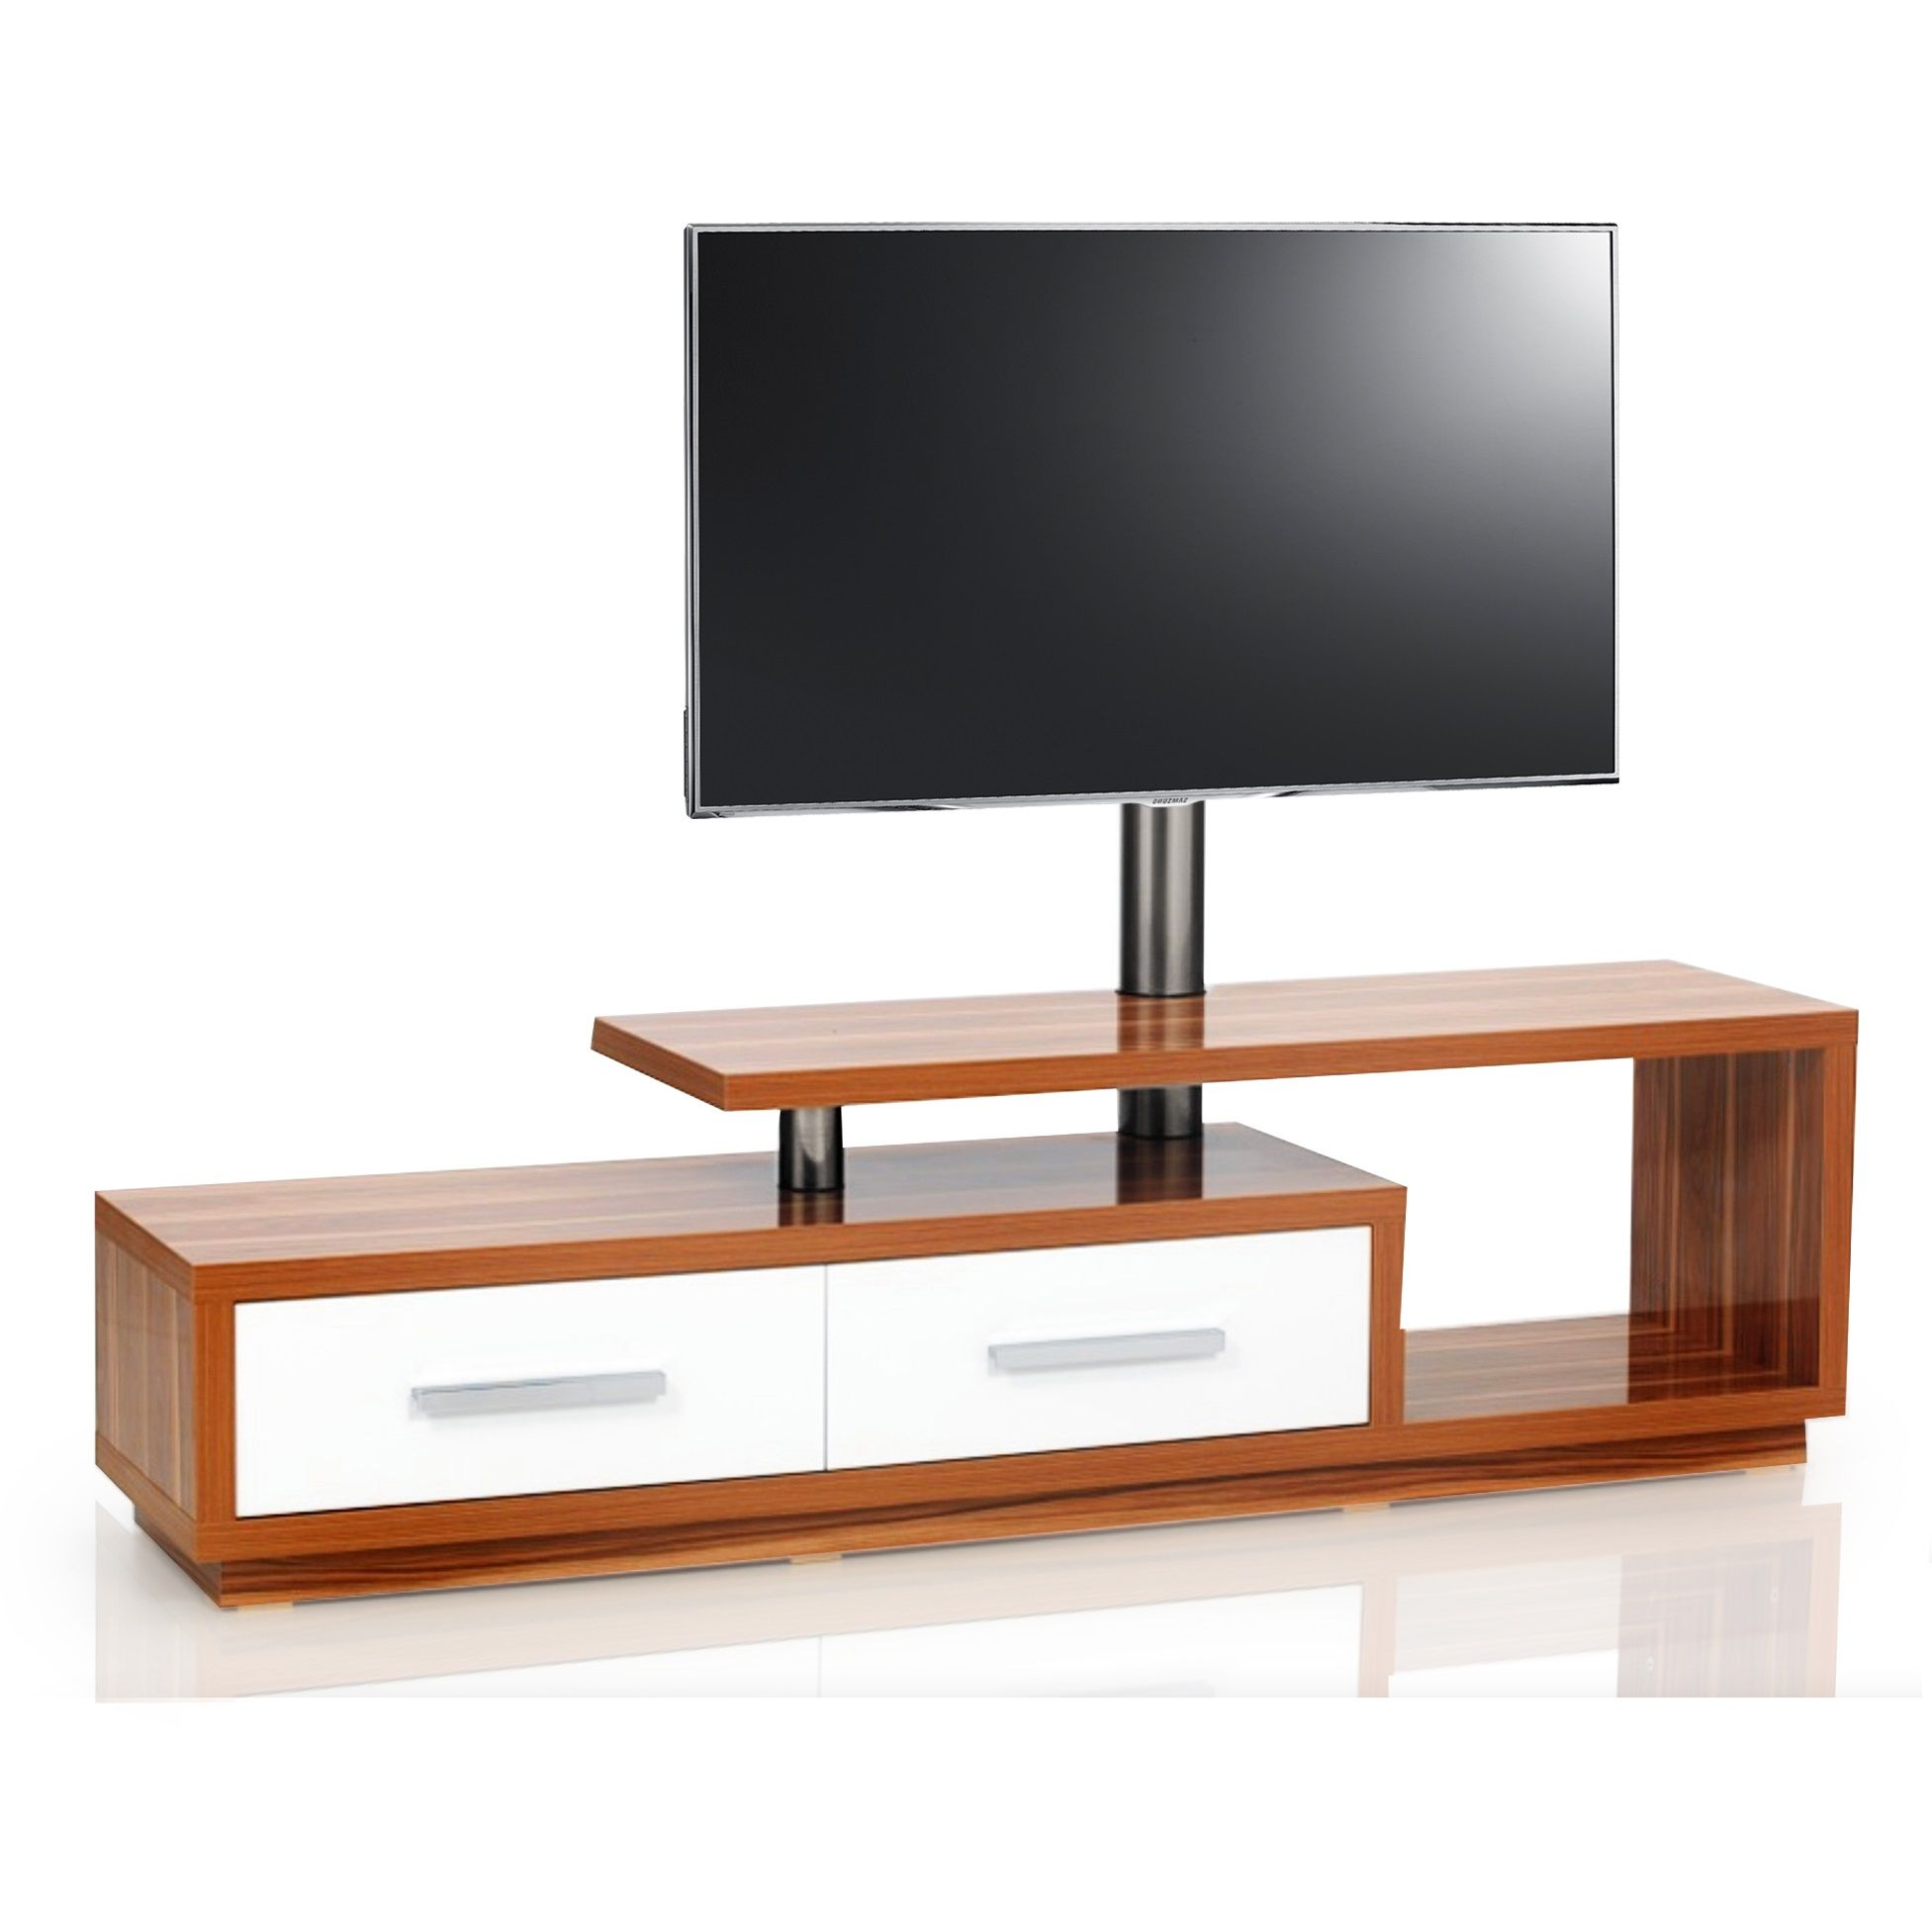 Meuble Pour Television Plasma - Stunning Tables De Television Contemporary Joshkrajcik Us [mjhdah]https://eq3.com/binaries/content/gallery/eq3_products_images/products/living/media–storage/media-storage/boom-plasma-unit/boom_plasma_unit_walnut_front_close_01.jpg